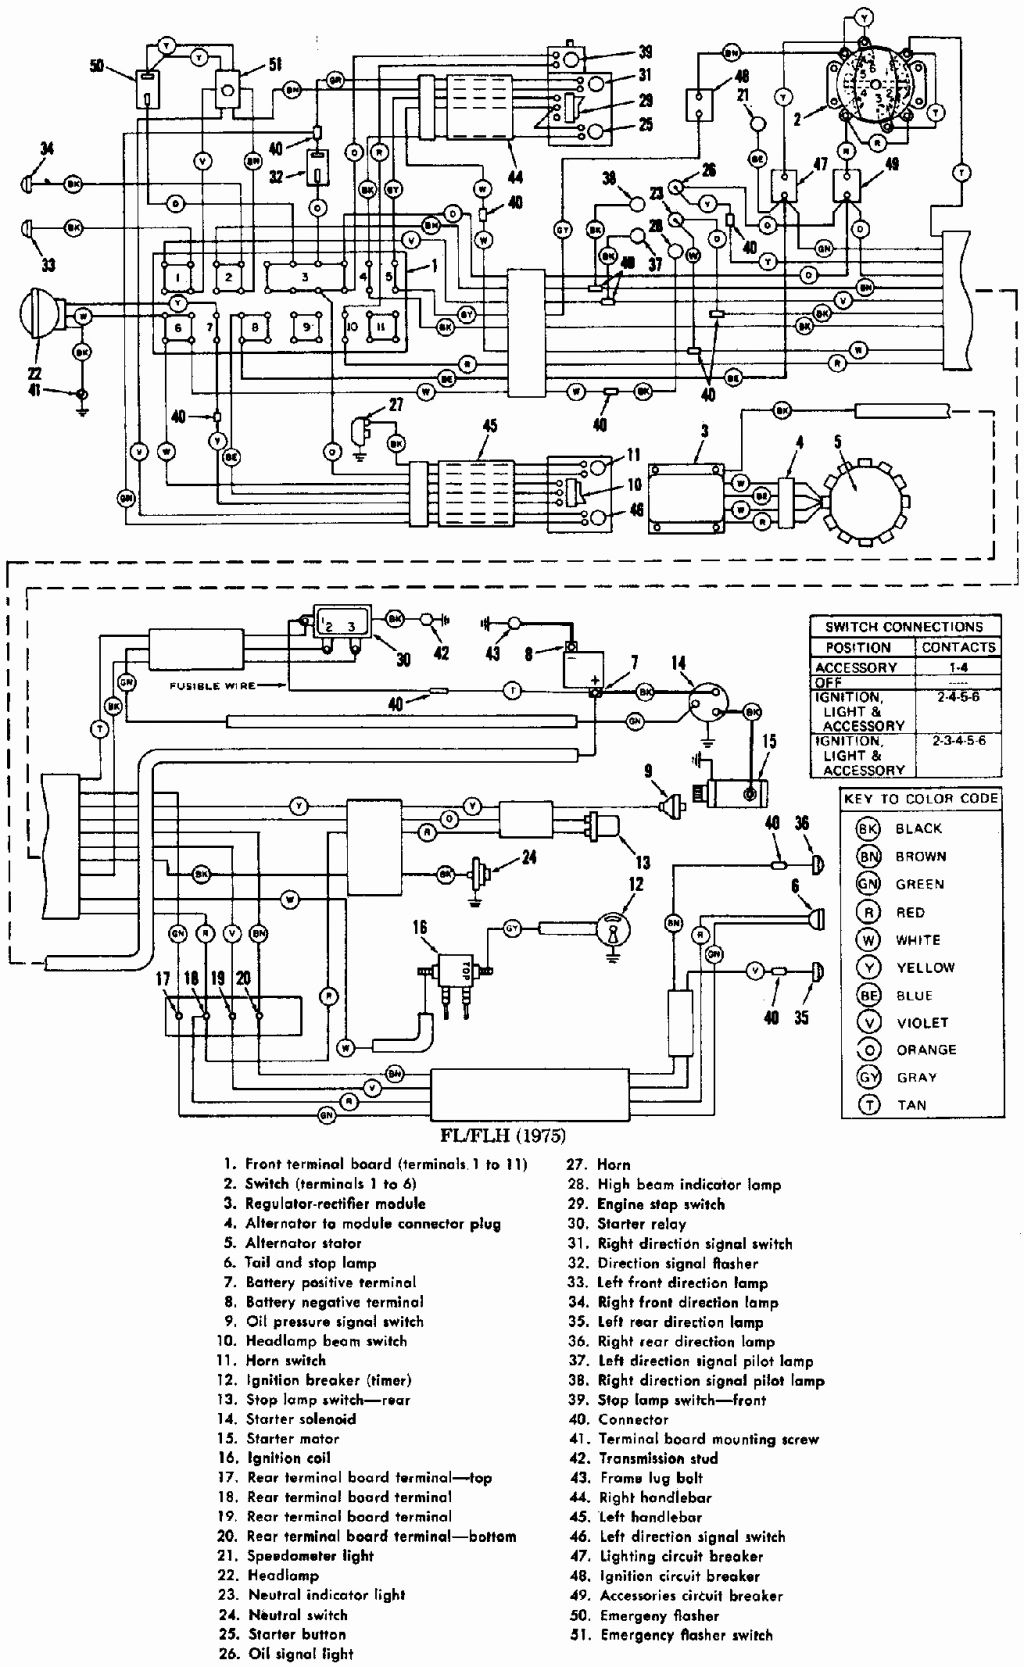 harley davidson electrical diagrams harley davidson electrical wiring diagram